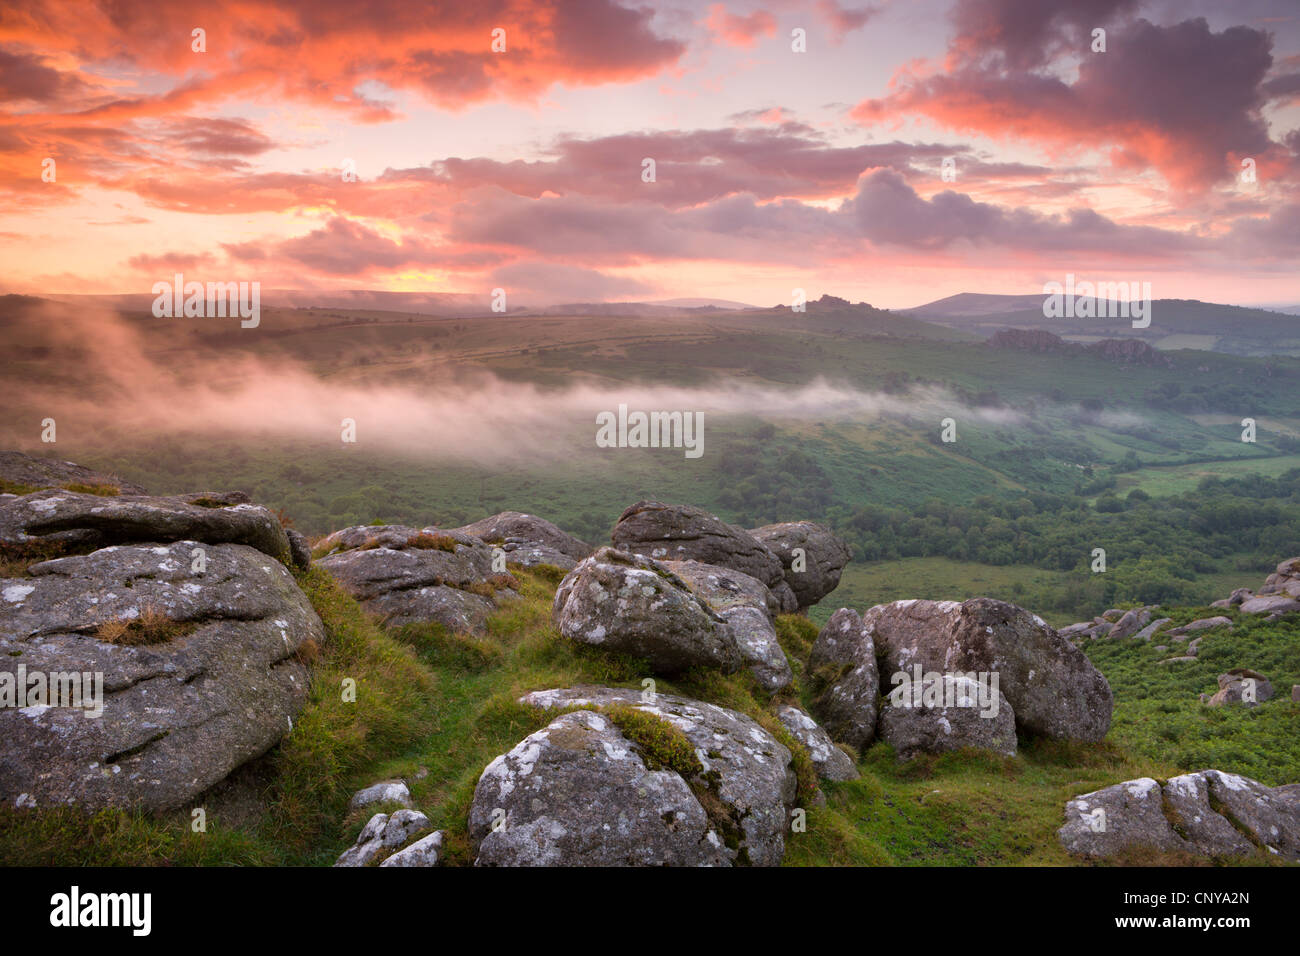 Dramatic sunset above a misty moorland near Hound Tor, Dartmoor National Park, Devon, England. Summer (July) 2010. - Stock Image